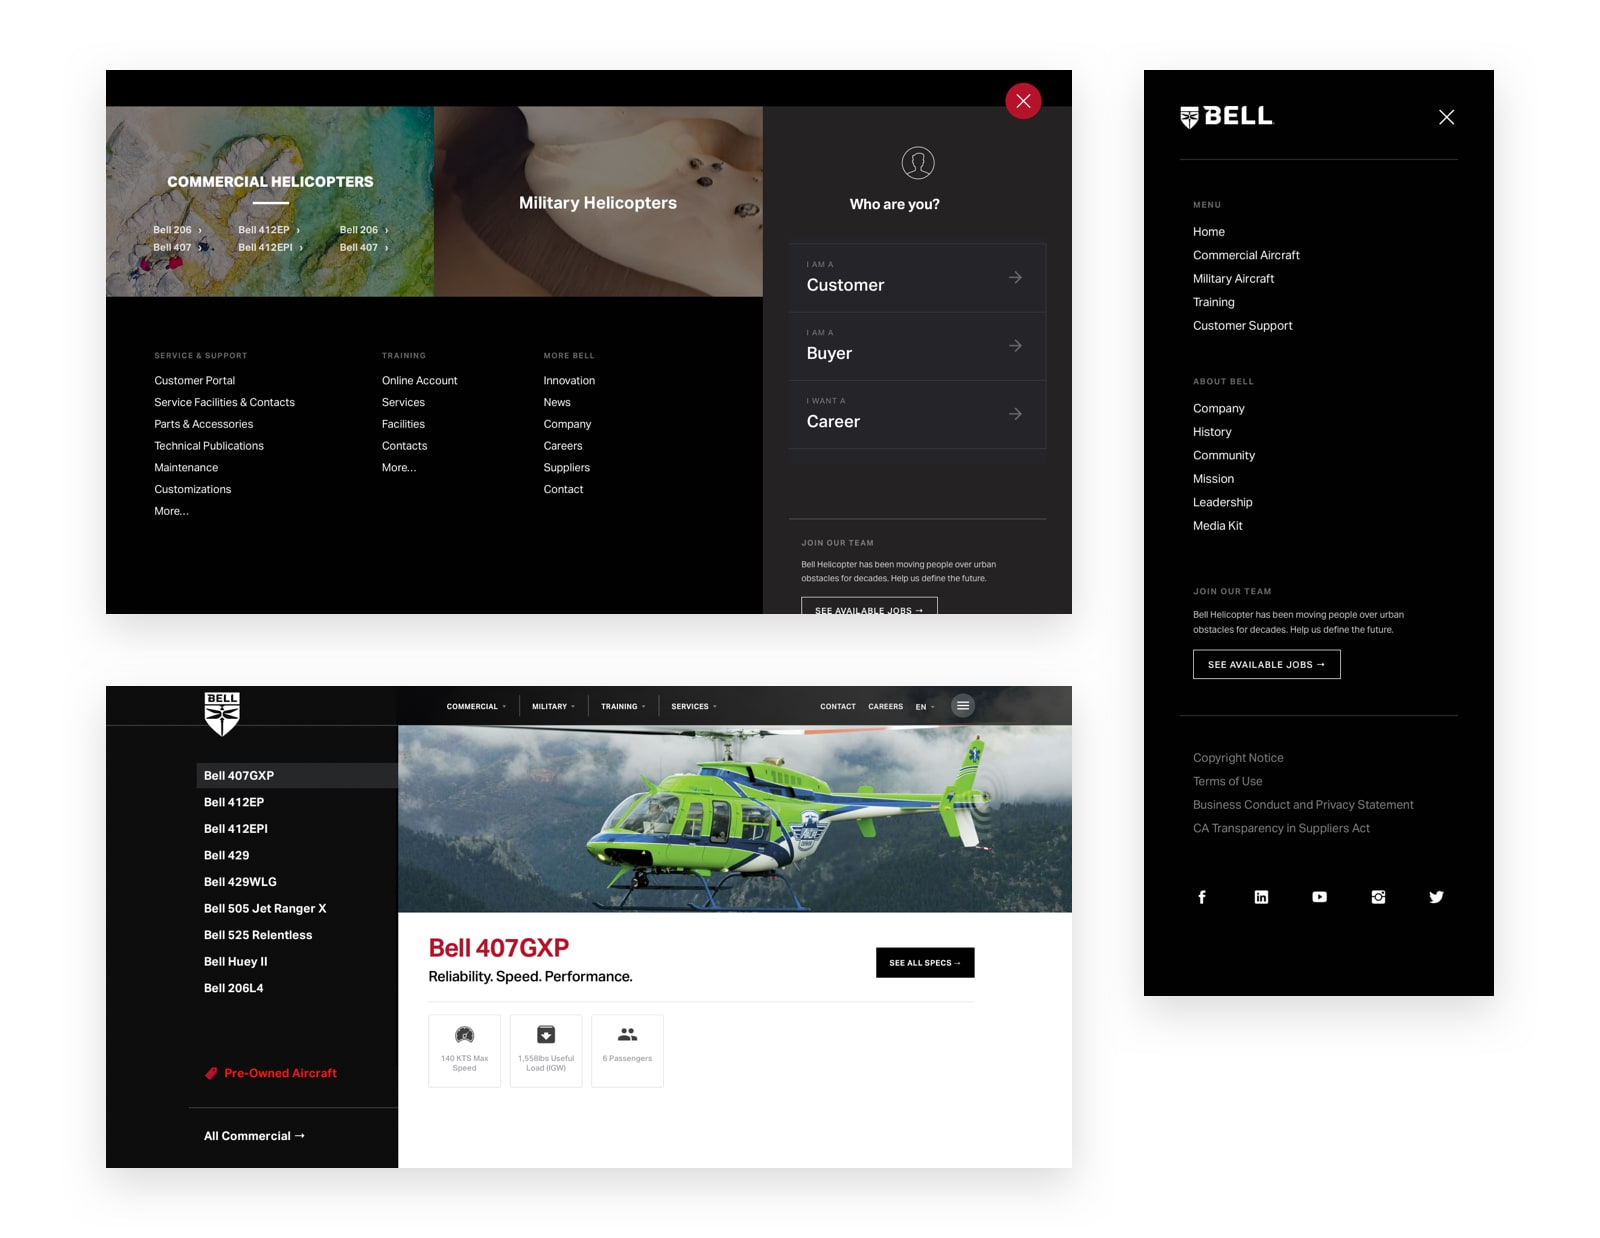 Bell Helicopter website menu designs by Spacetime